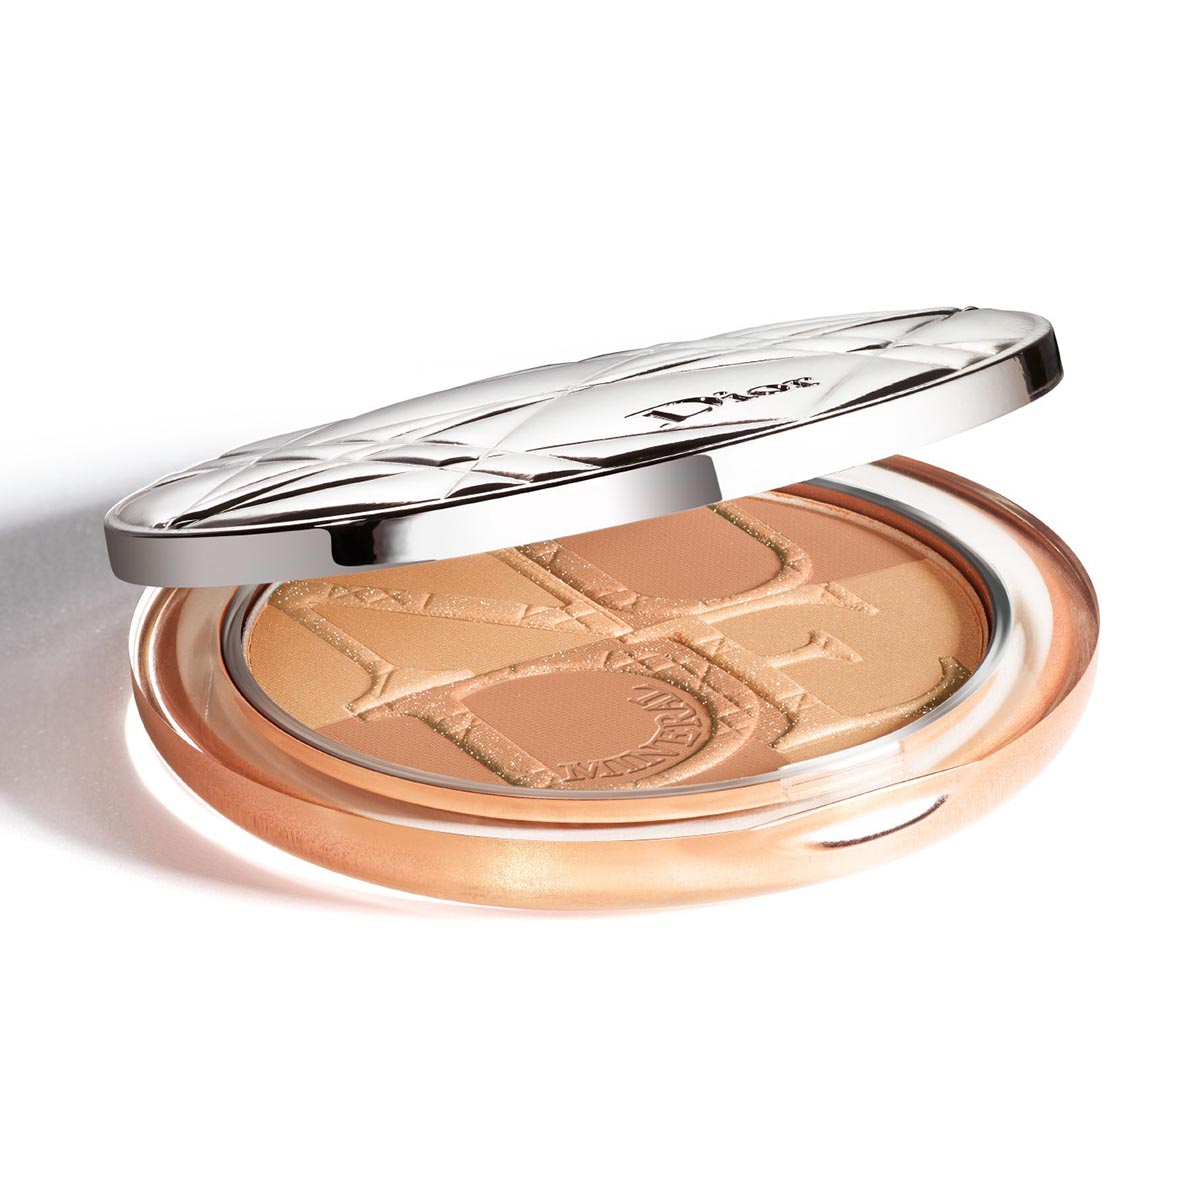 Dior diorskin mineral nude bronze powder 04 warm sunrise